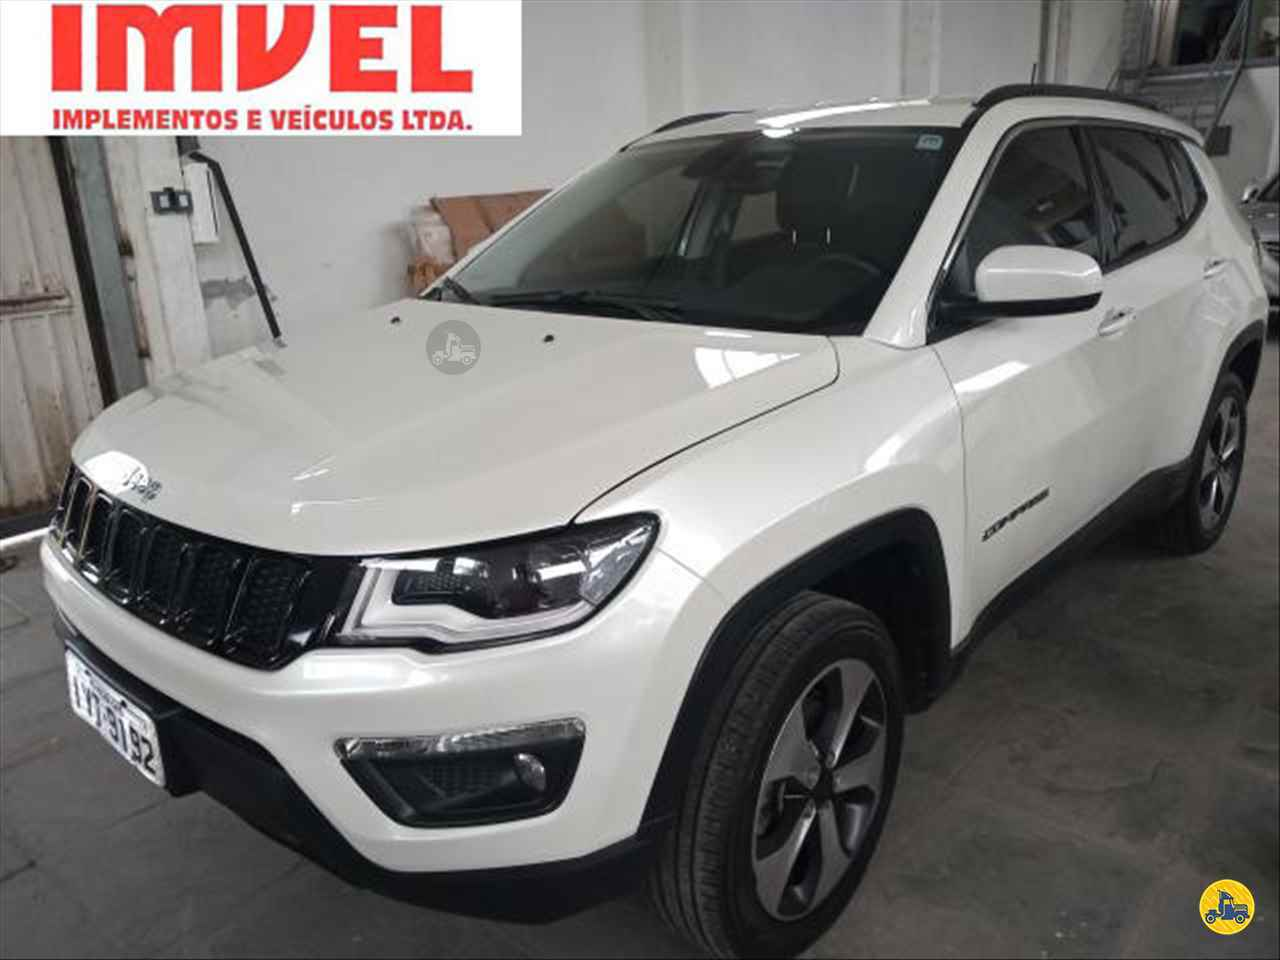 JEEP Compass 2.0 Sport  2017/2018 Imvel Implementos e Veículos